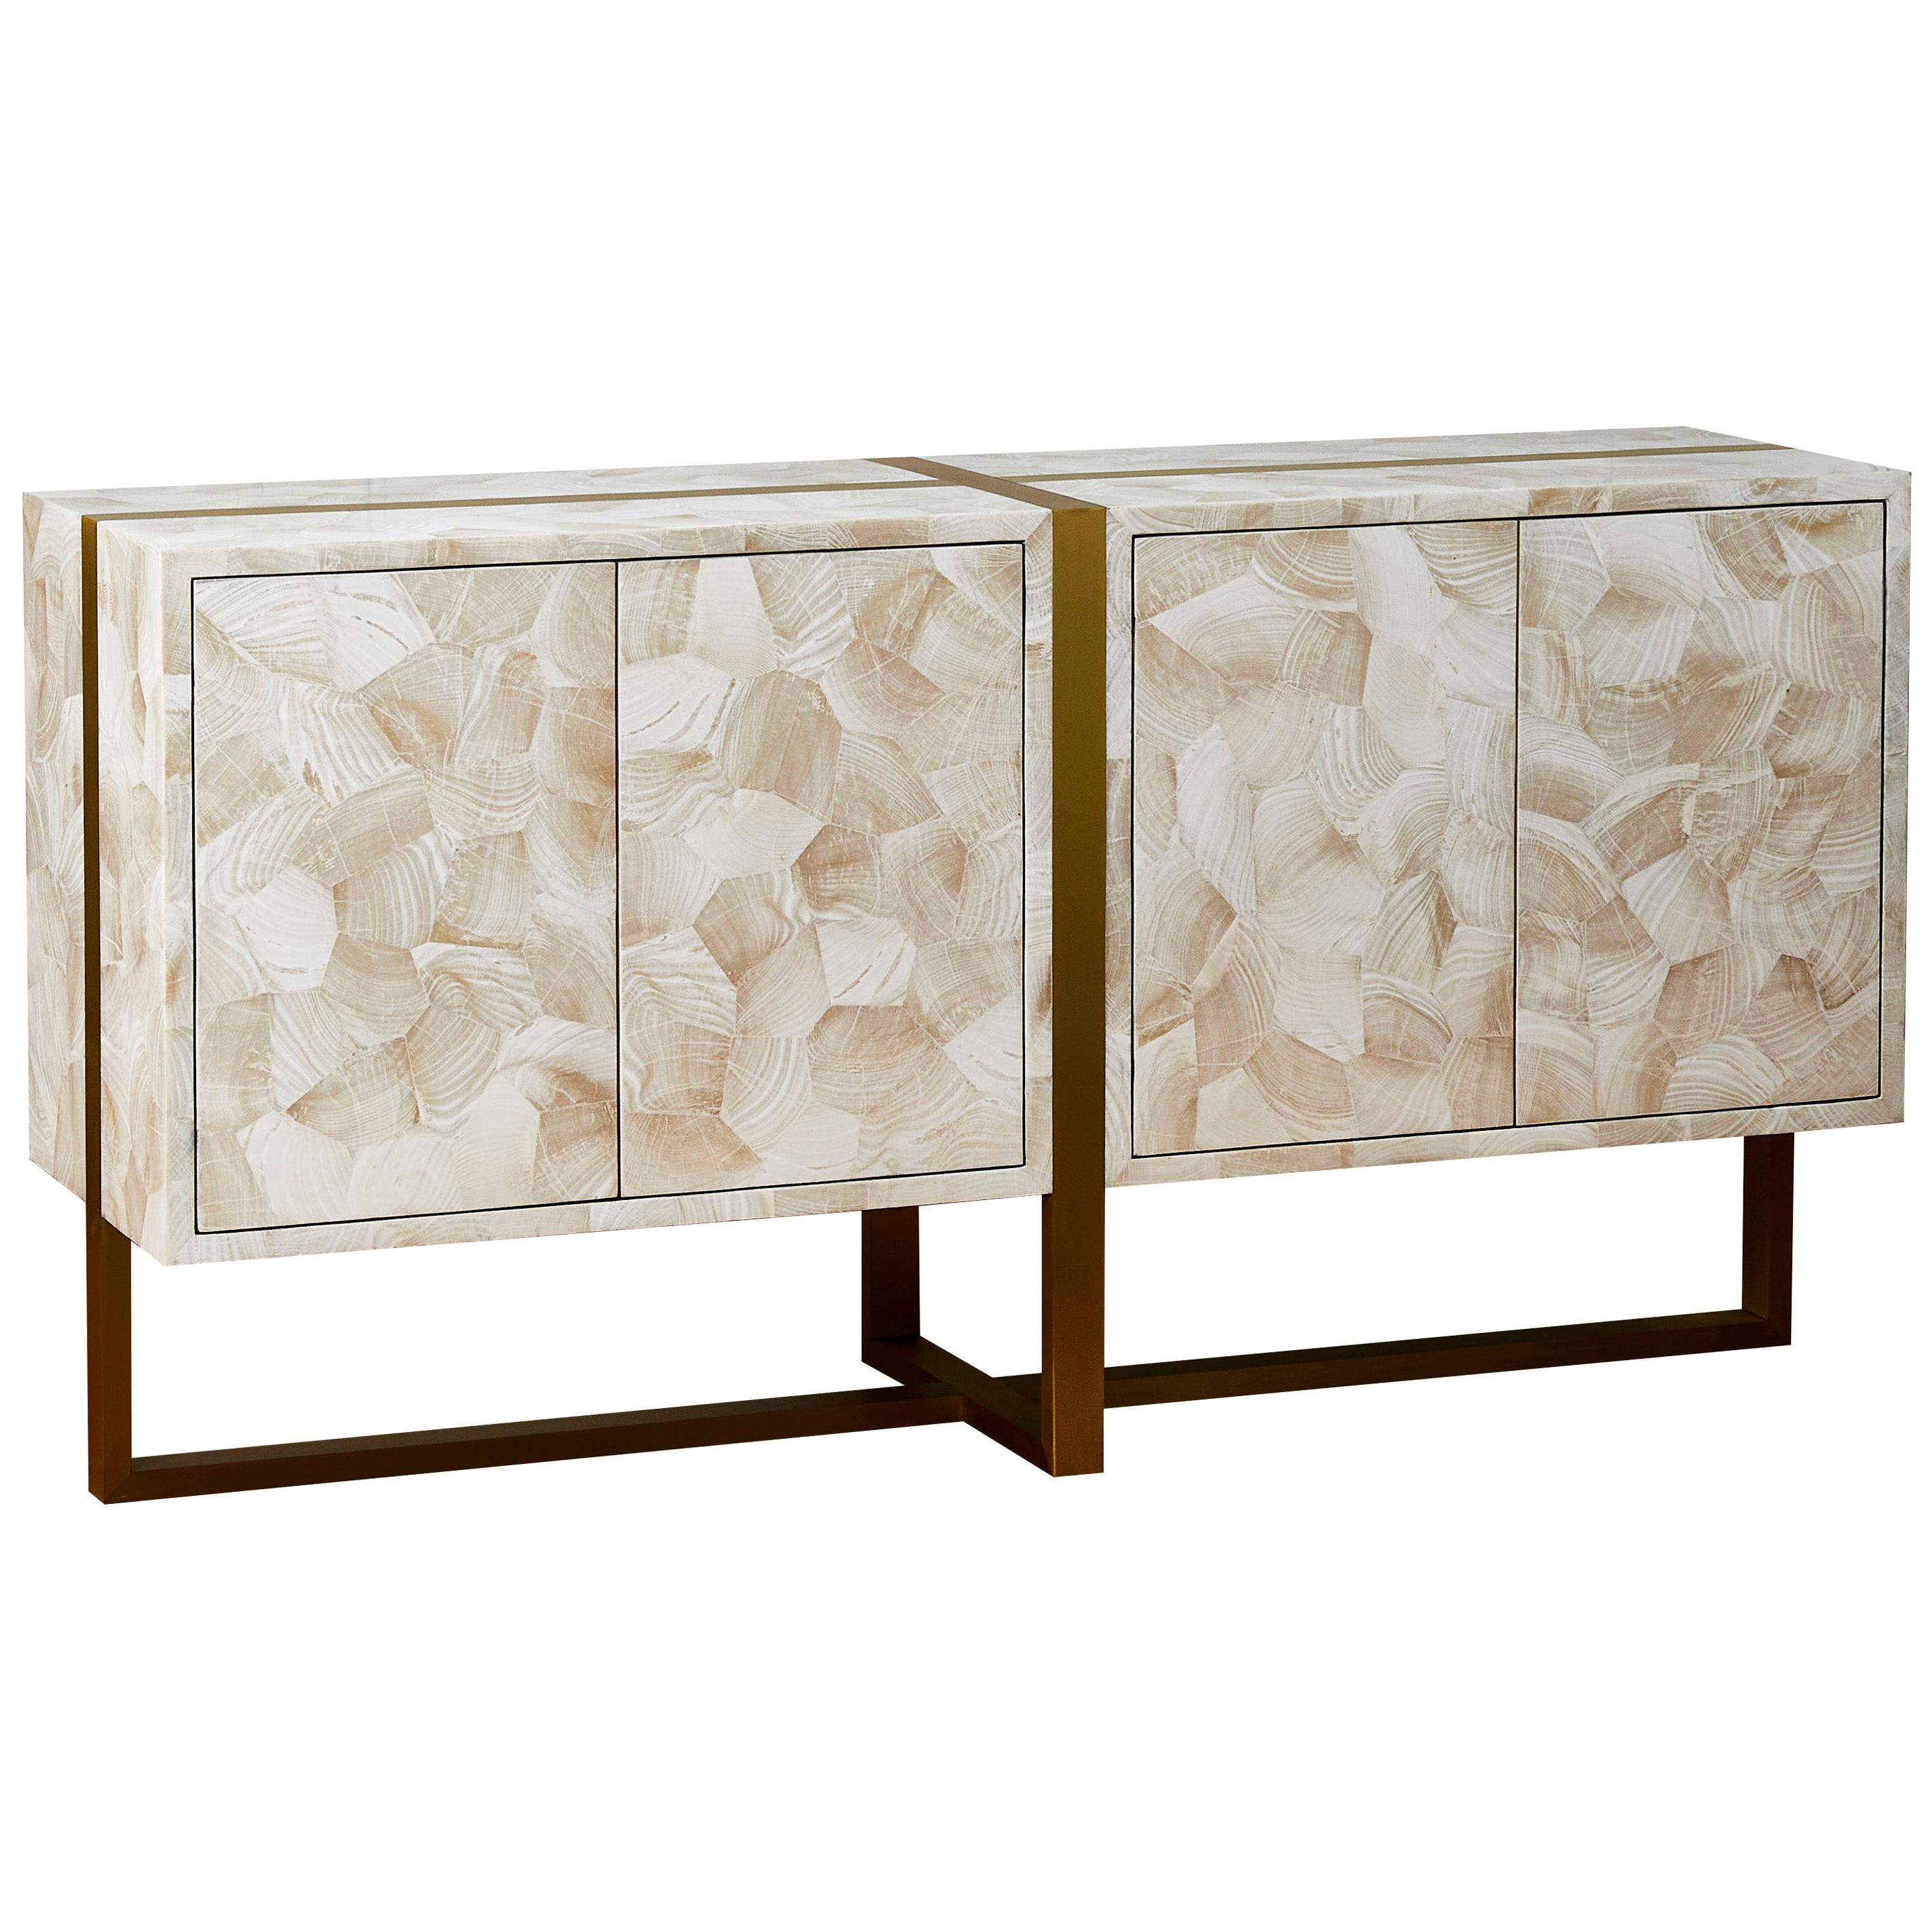 Sideboard in Ocean Fossils at cost price.